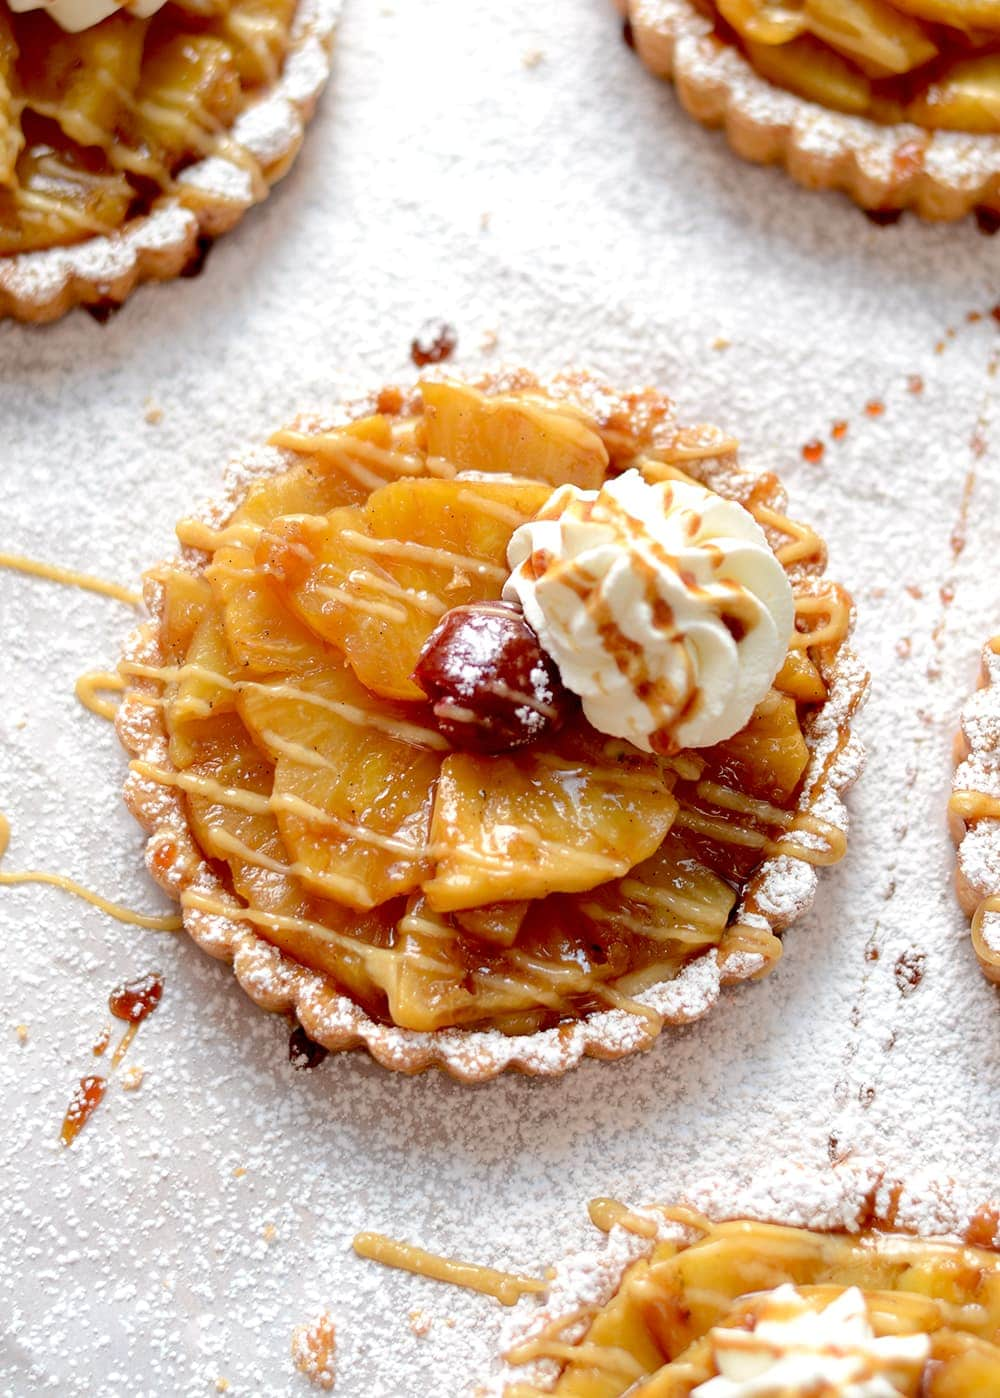 These Pineapple Rum Tartlets pack a punch of flavor! Fresh pineapple gets drenched in a sugary, rum concoction and layered into a sweet and crumbly crust. The pineapple itself is a symbol of welcome and hospitality, so perfect to serve guests for holidays or special dinners. | vintagekitty.com